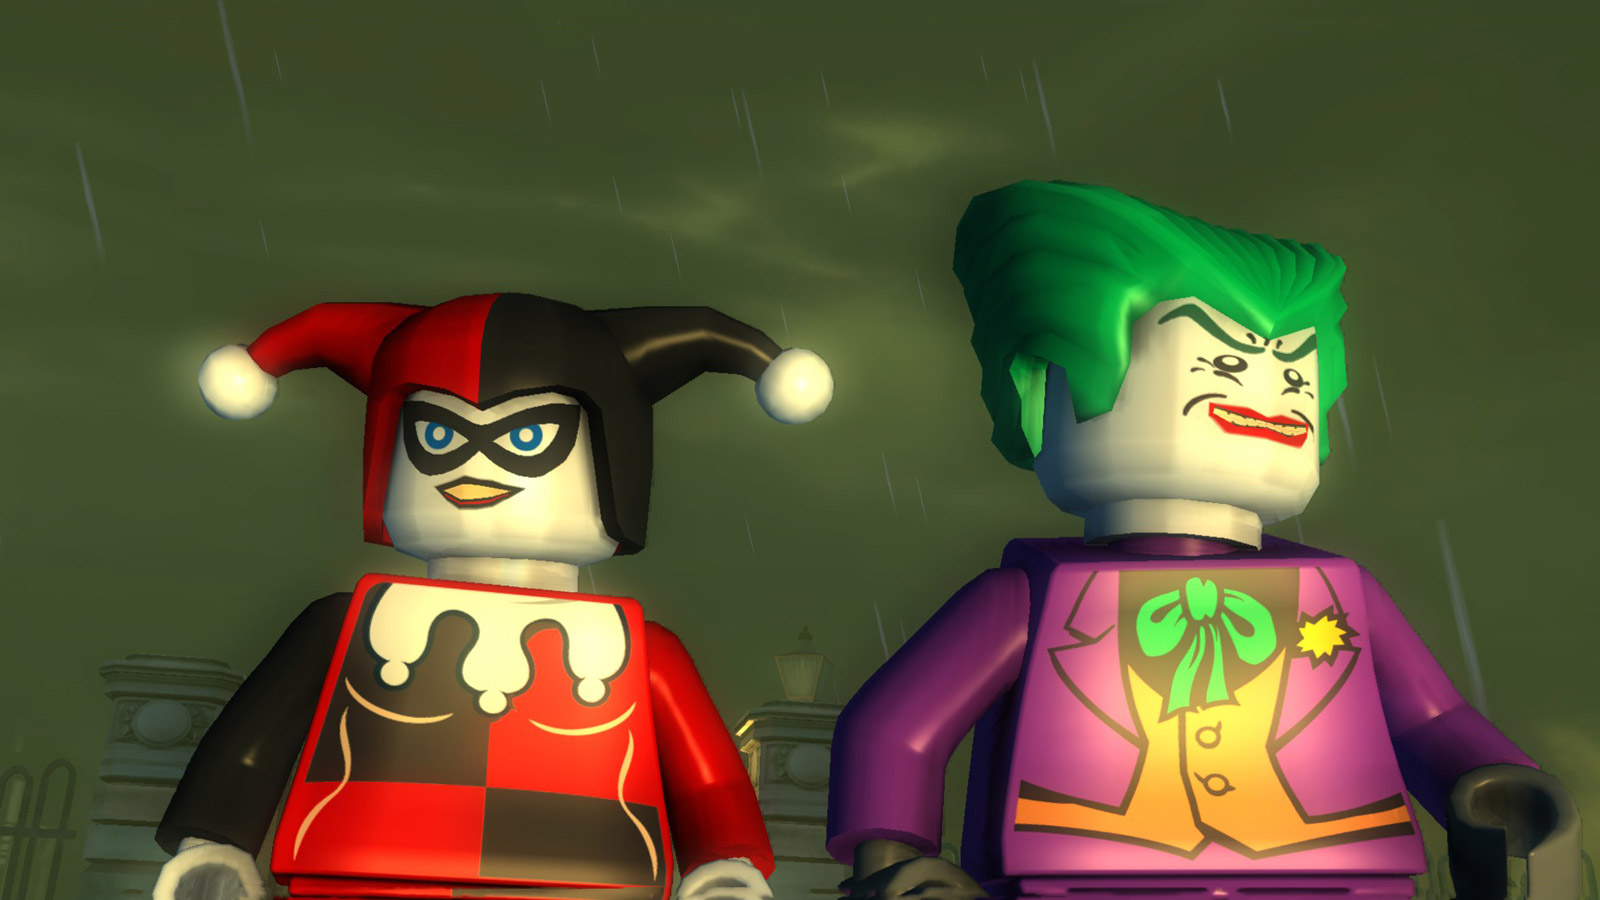 Free Lego Batman: The Videogame Wallpaper in 1600x900